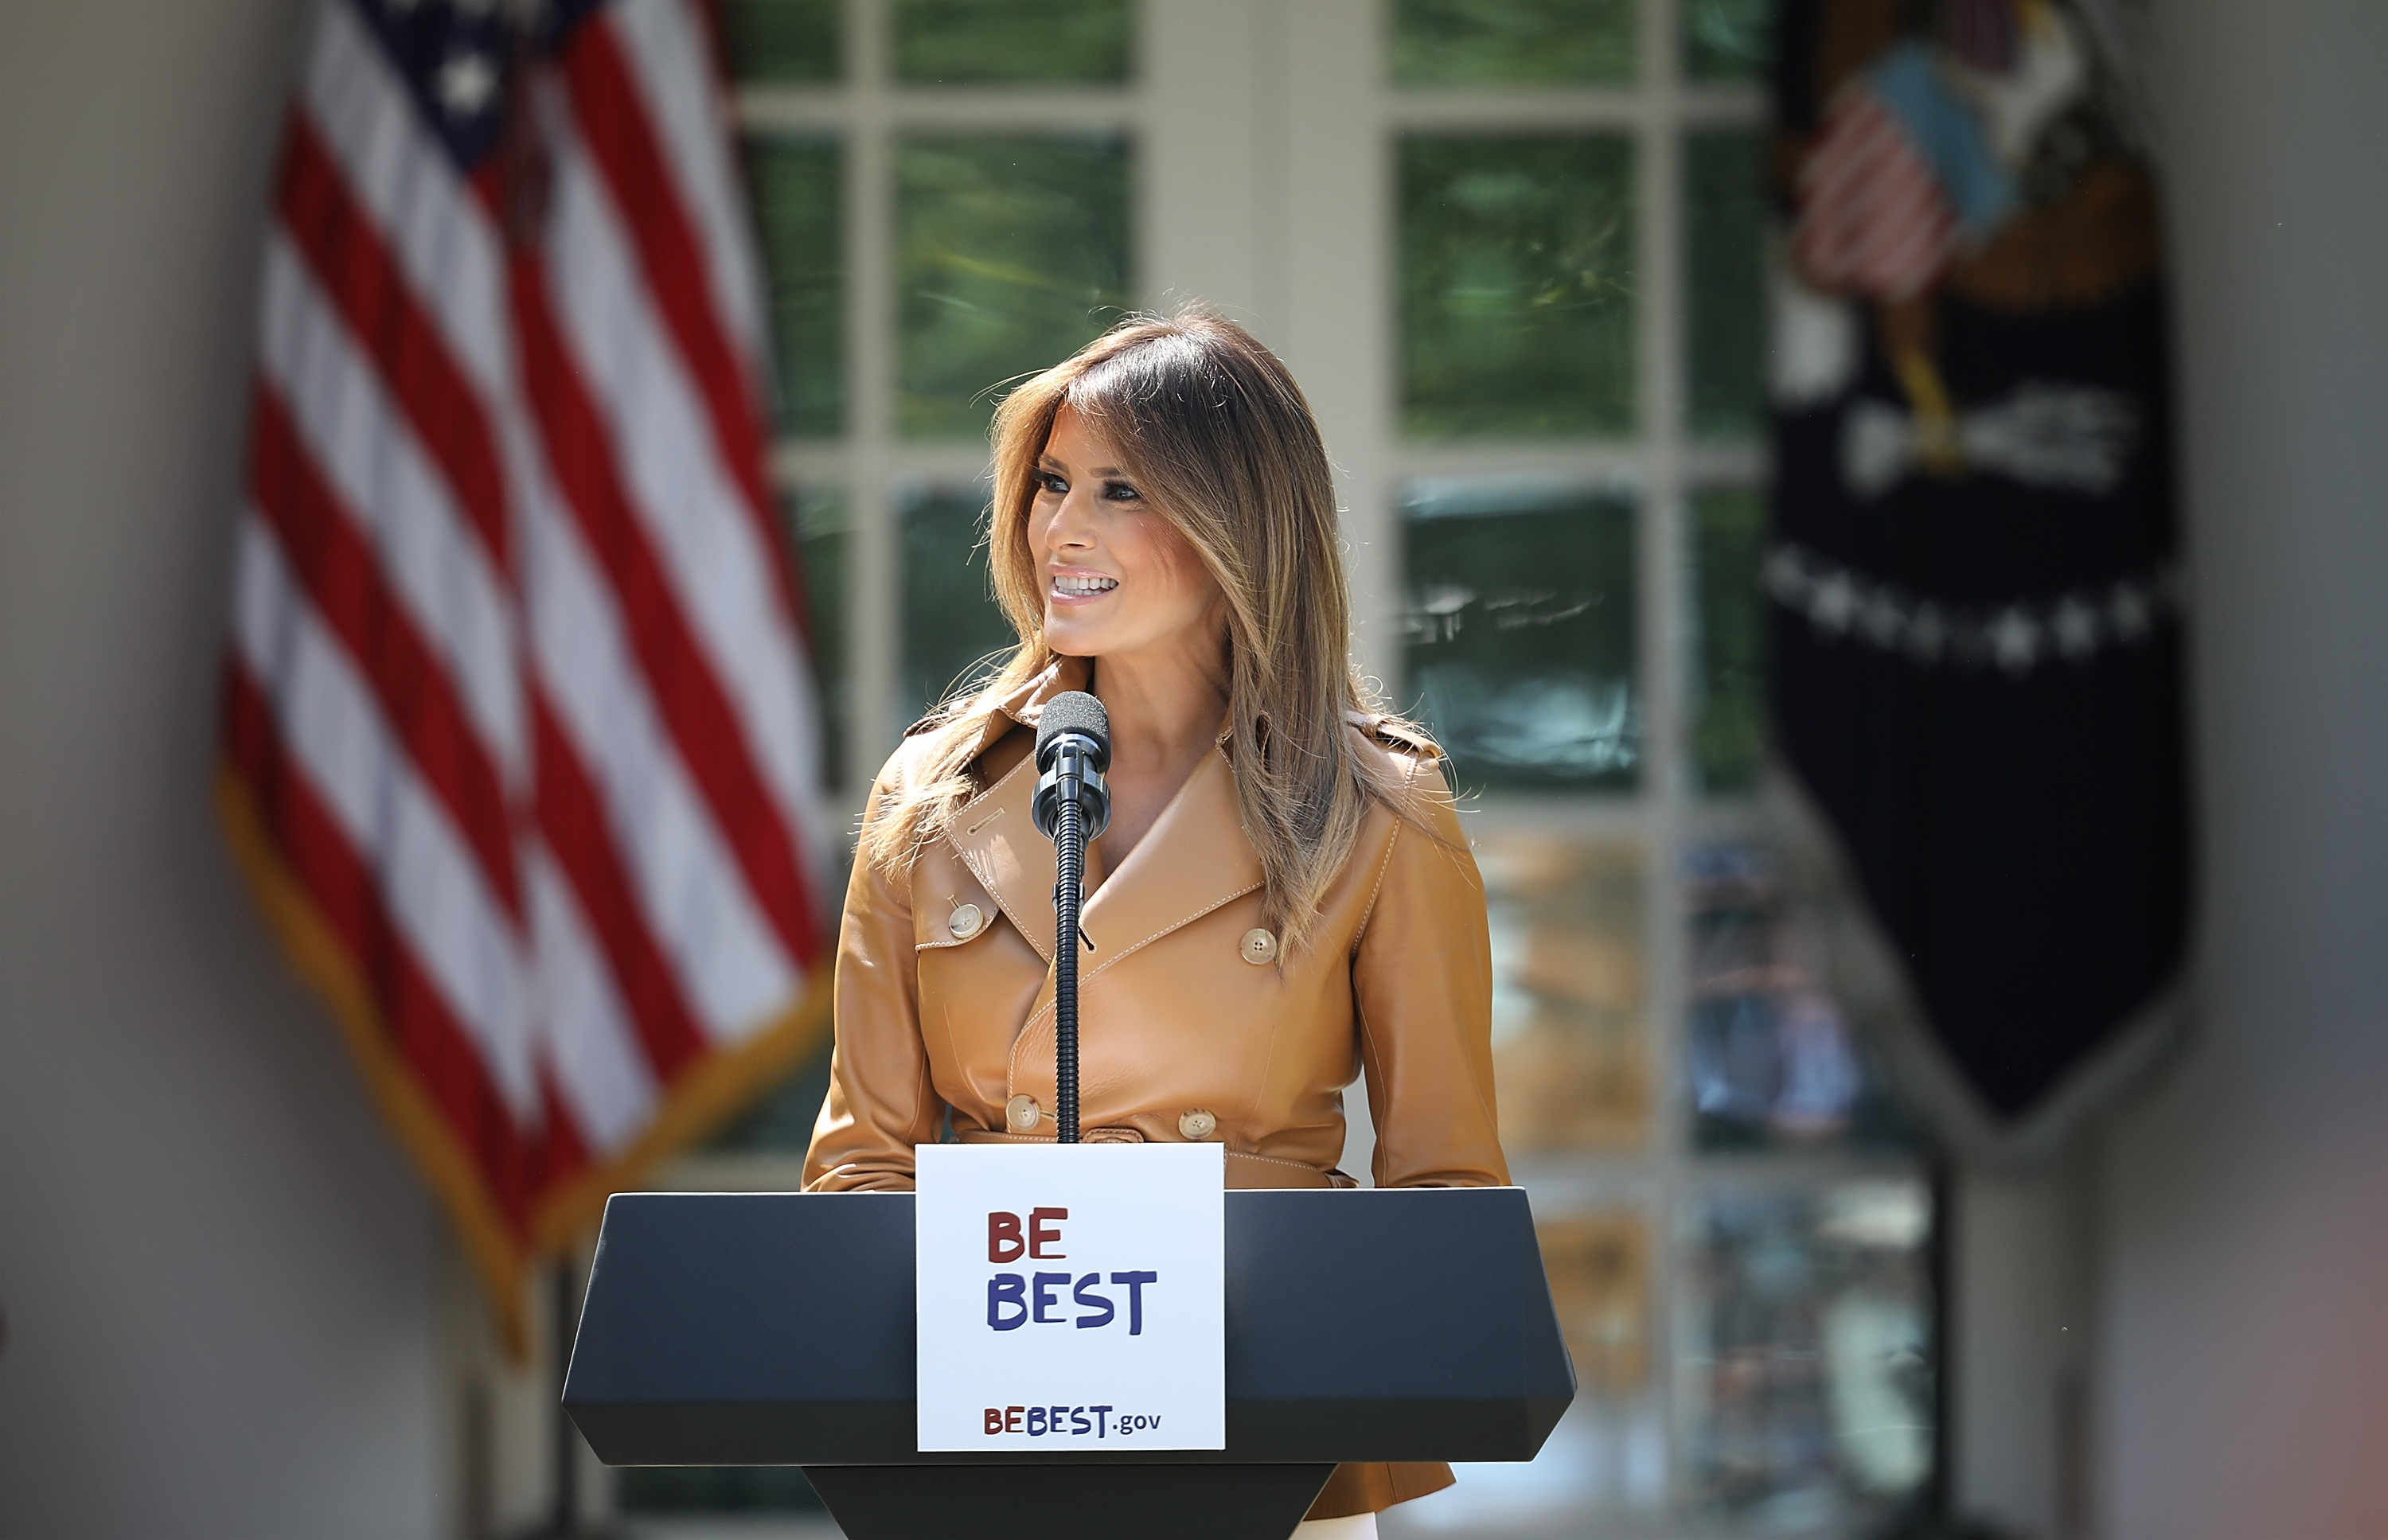 U.S. First Lady Melania Trump speaks in the Rose Garden of the White House May 7, 2018, in Washington, DC. Trump outlined her new initiatives, known as the Be Best program, during the event. (Getty Images)